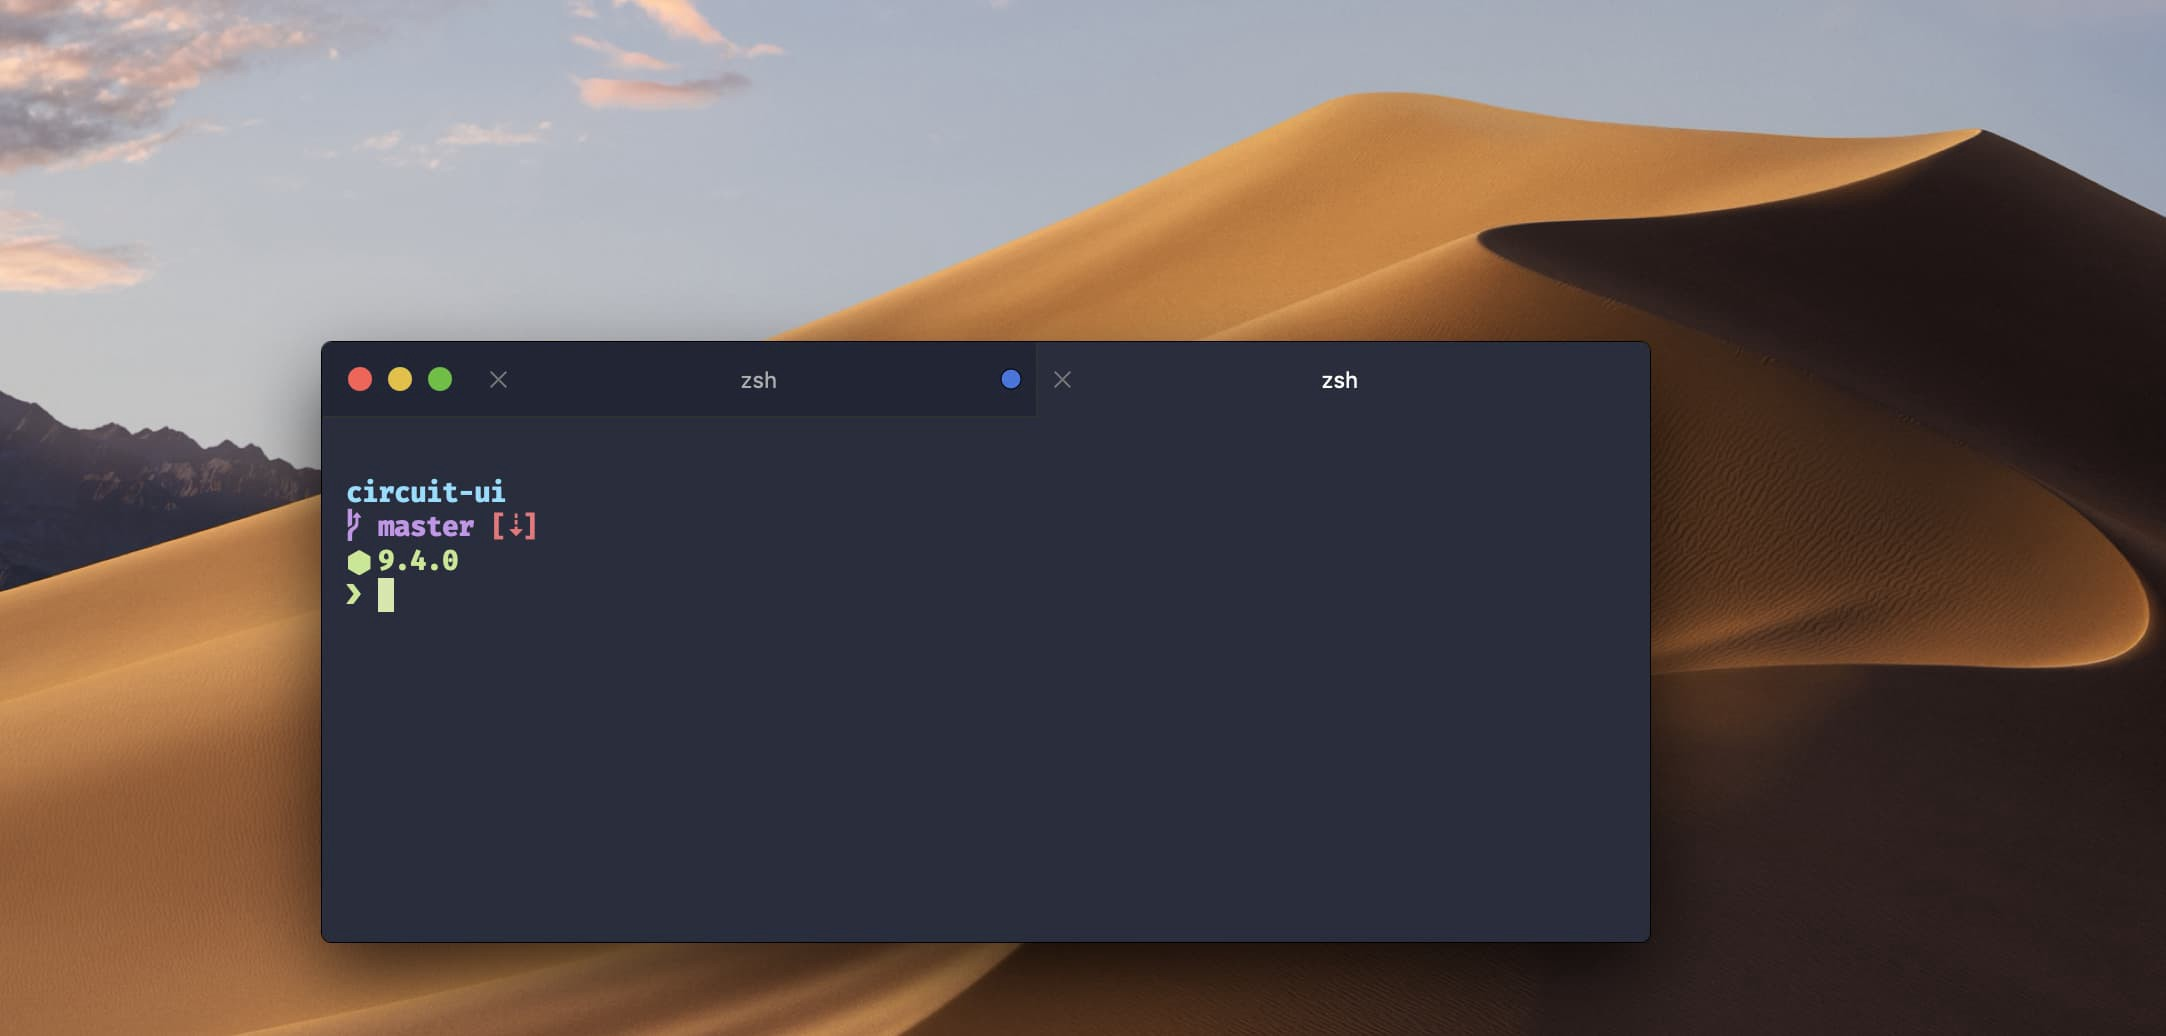 Custom iTerm2 titlebar background colors - Code matters